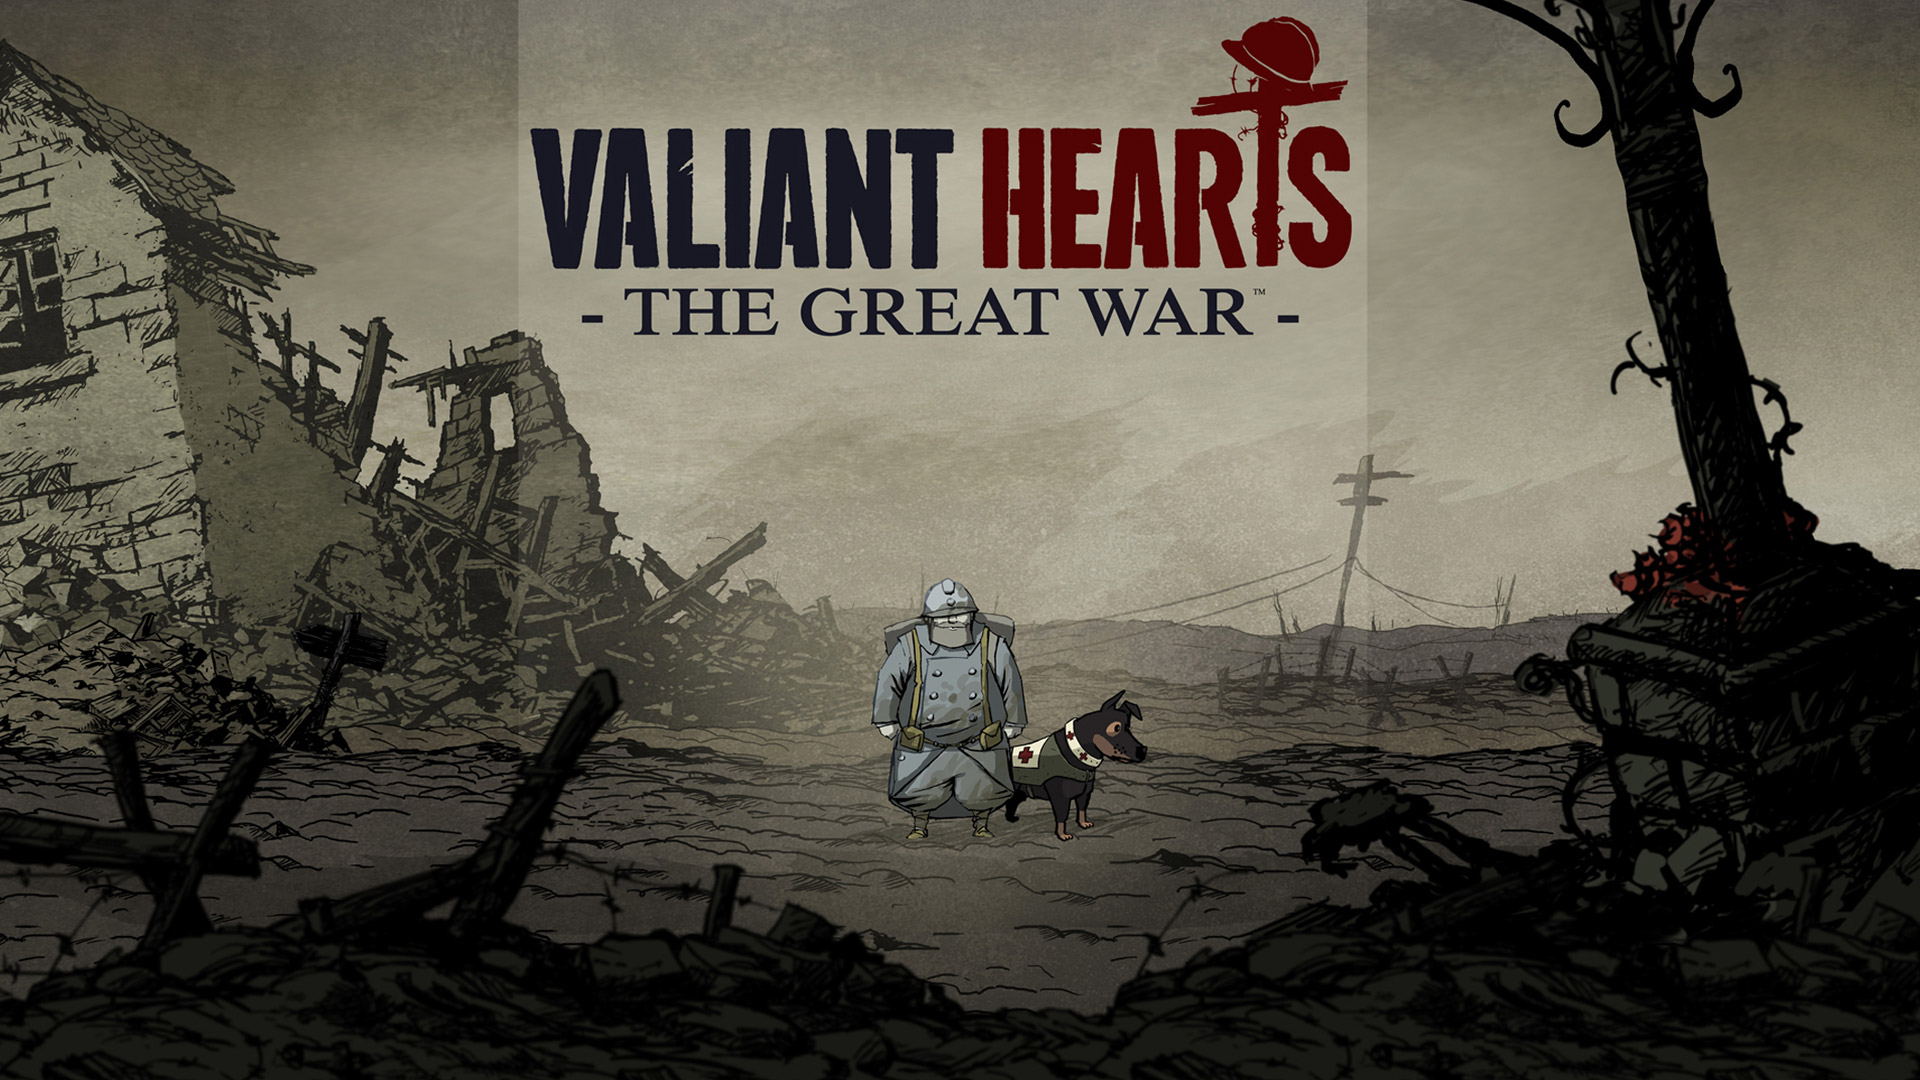 Valiant Hearts wallpaper 1